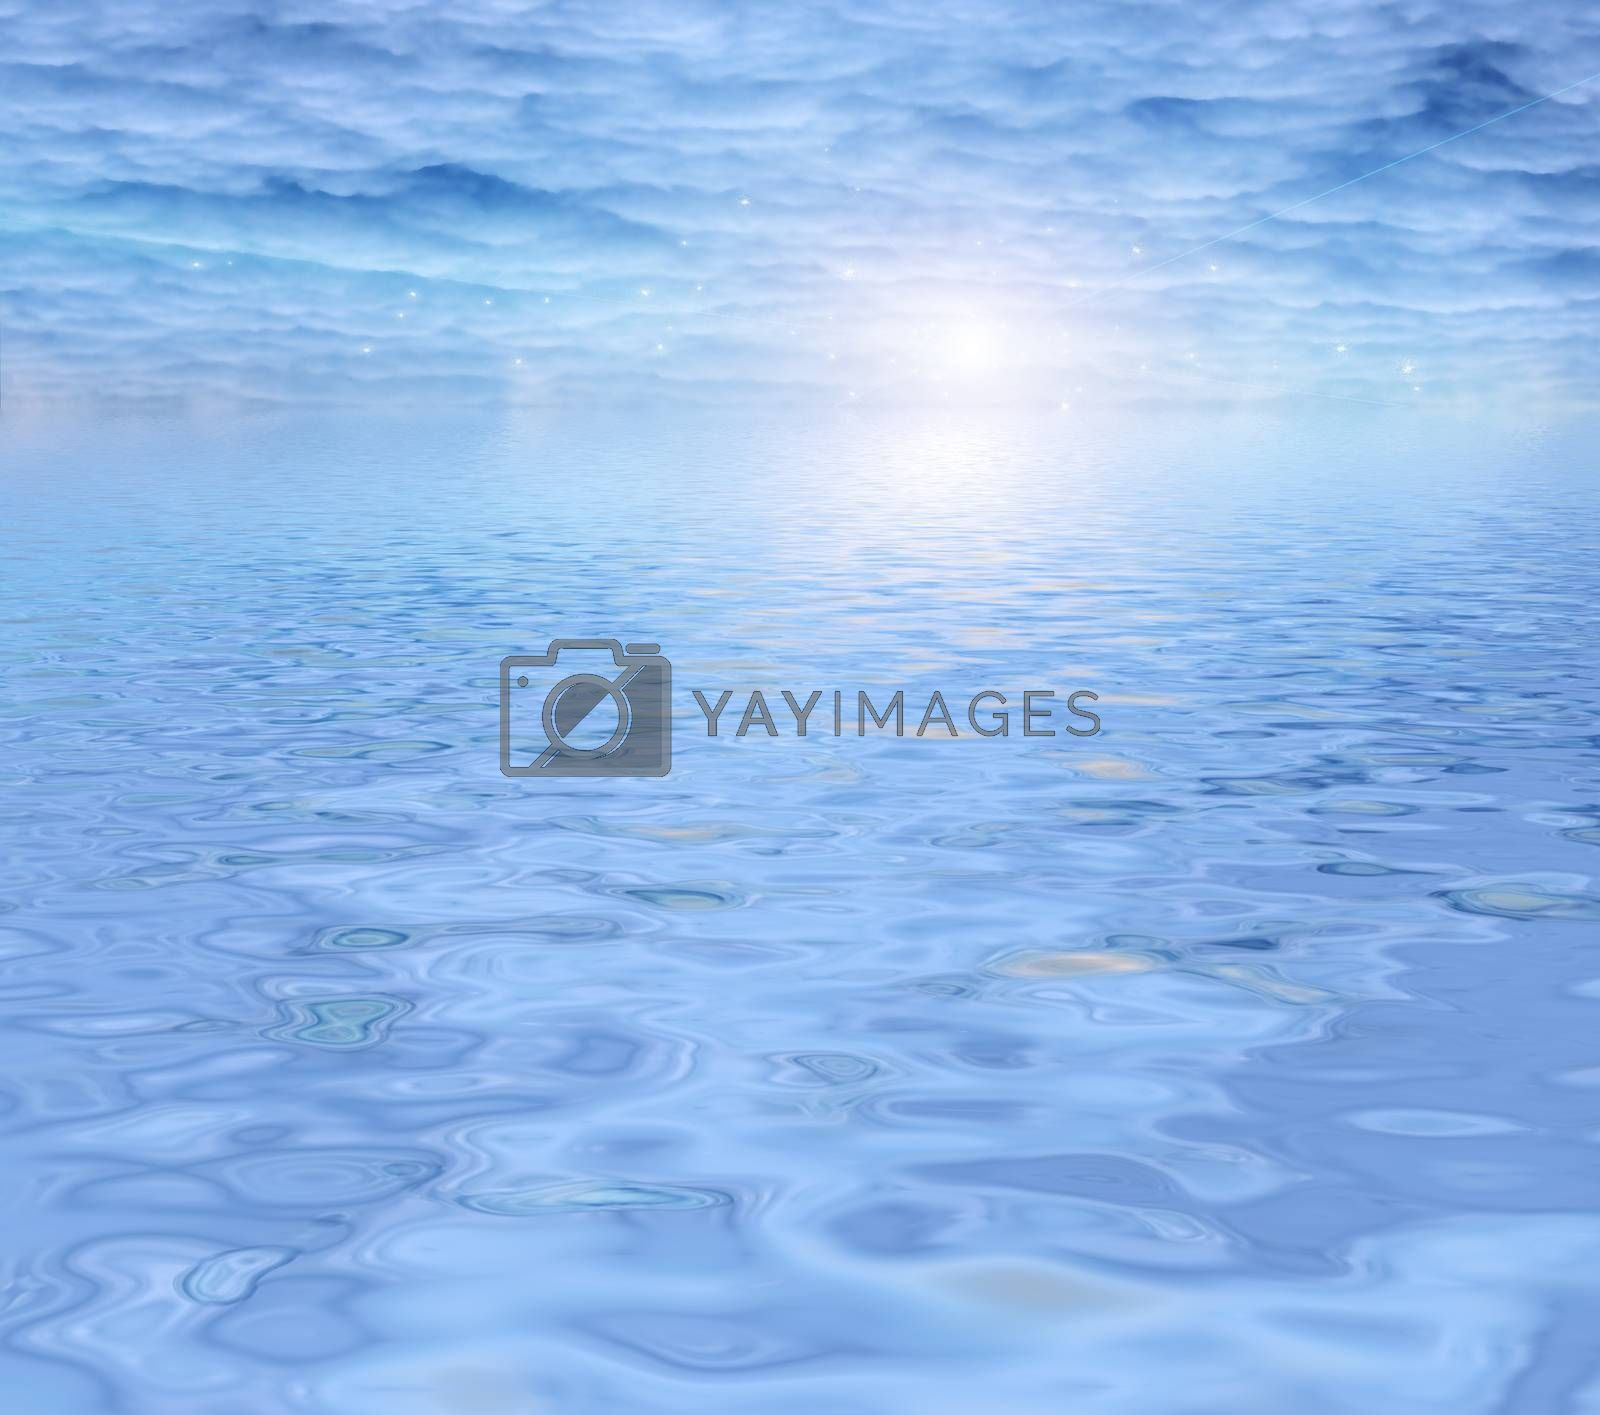 Light water and clouds. 3D rendering